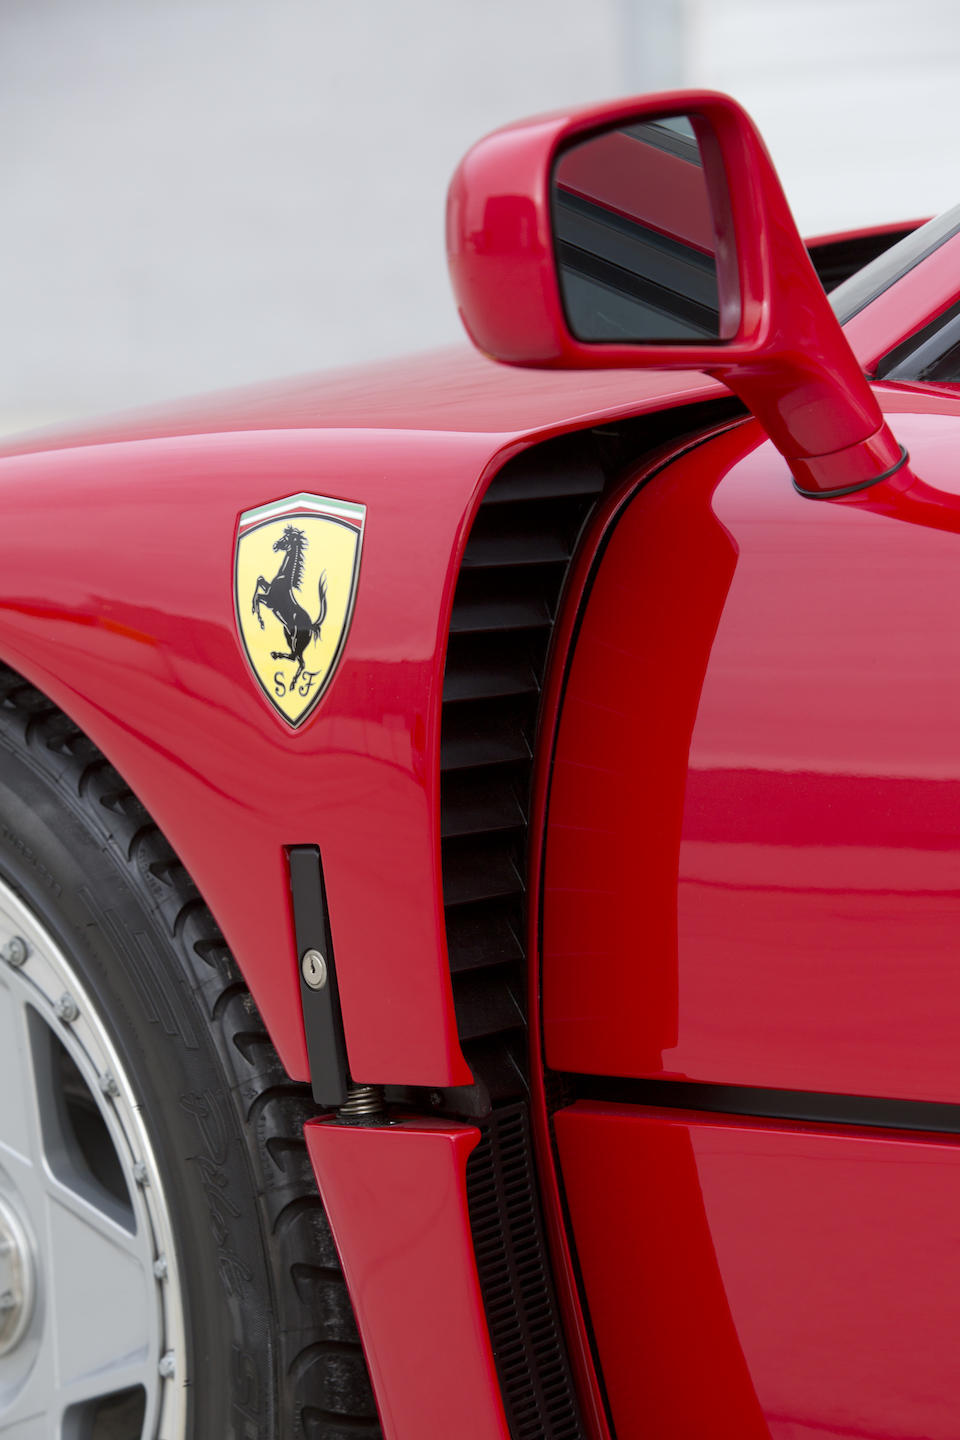 <i>The last US-specification example built</i><br /><b>1992 FERRARI F40  </b><br />VIN. ZFFMN34A1N0093627 <br />Engine no. 31130